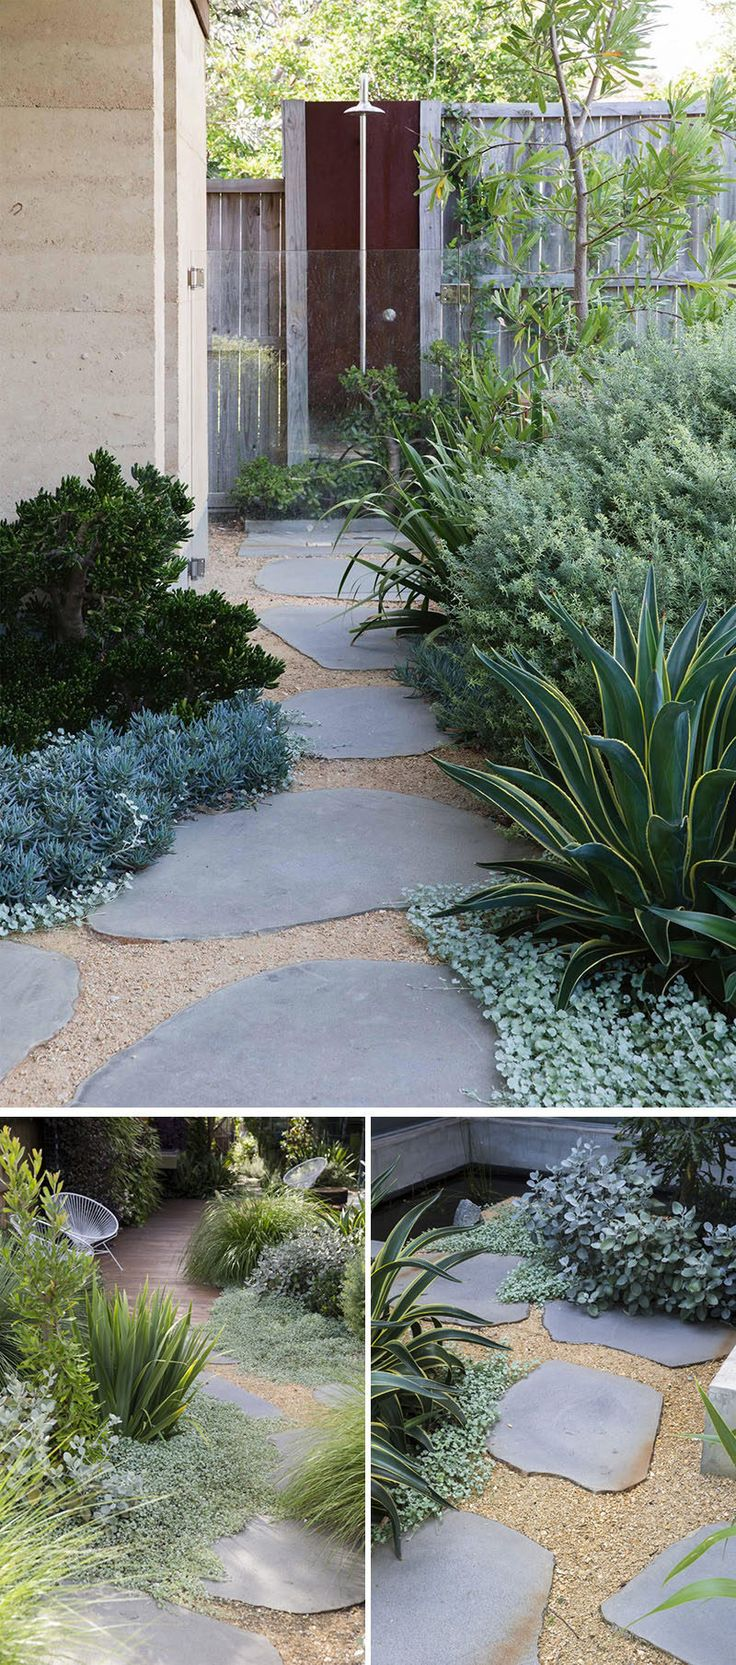 10 Ideas for Stepping Stones in Your Garden // These large stones allow you get from one part of the yard to the outdoor shower without getting gravel stuck in between your toes, and without harming the plants.